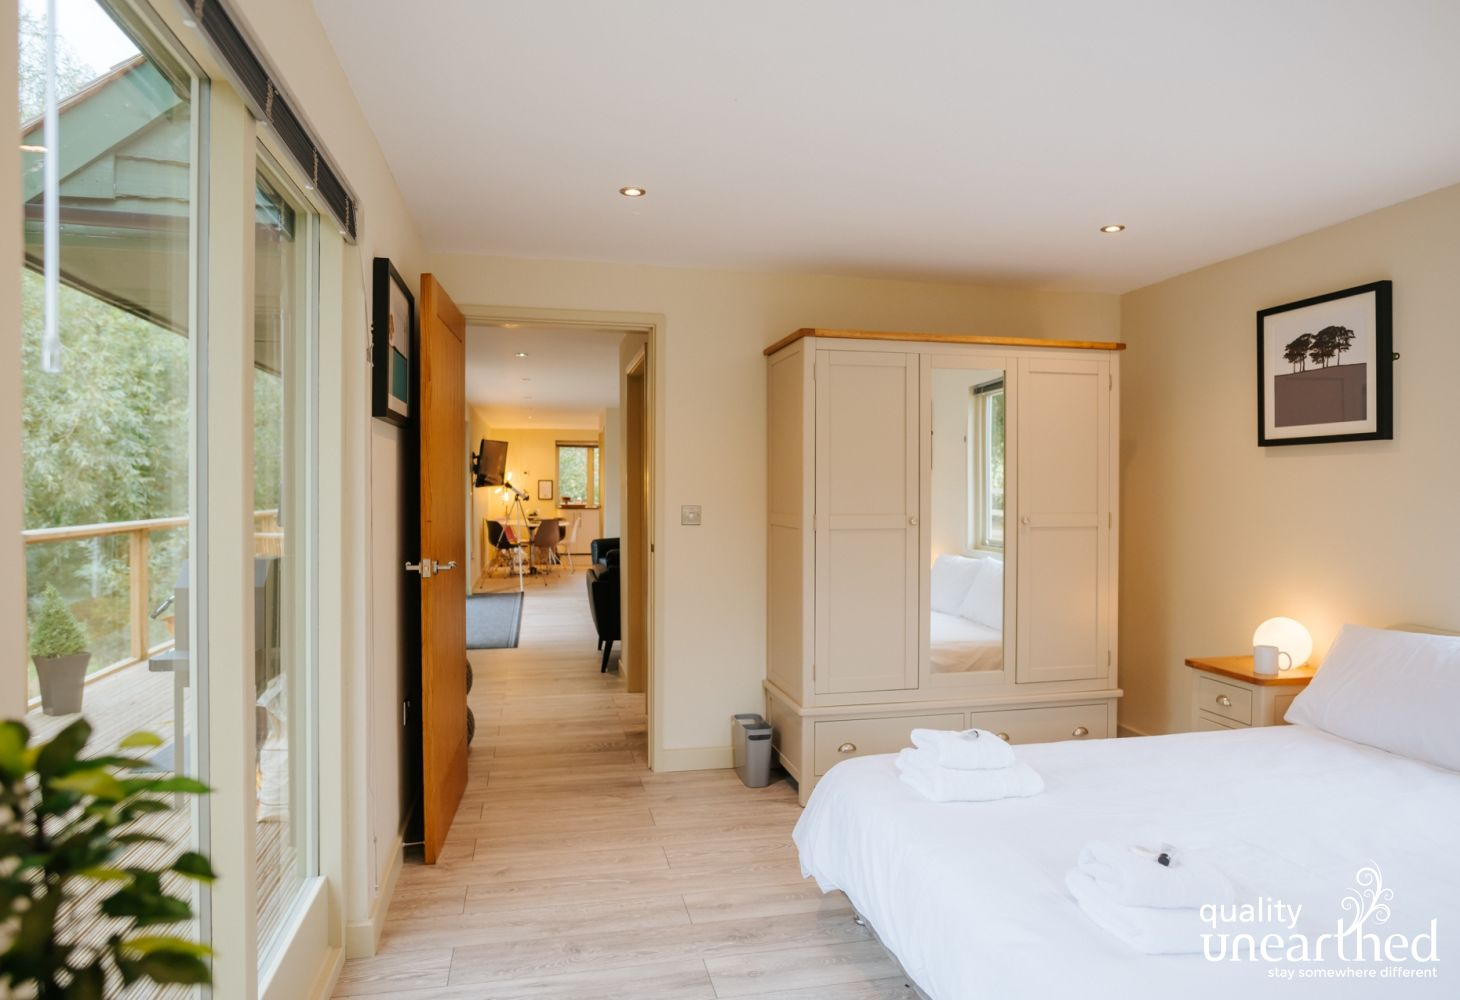 One of the spacious double bedrooms opens directly onto the treehouse terrace